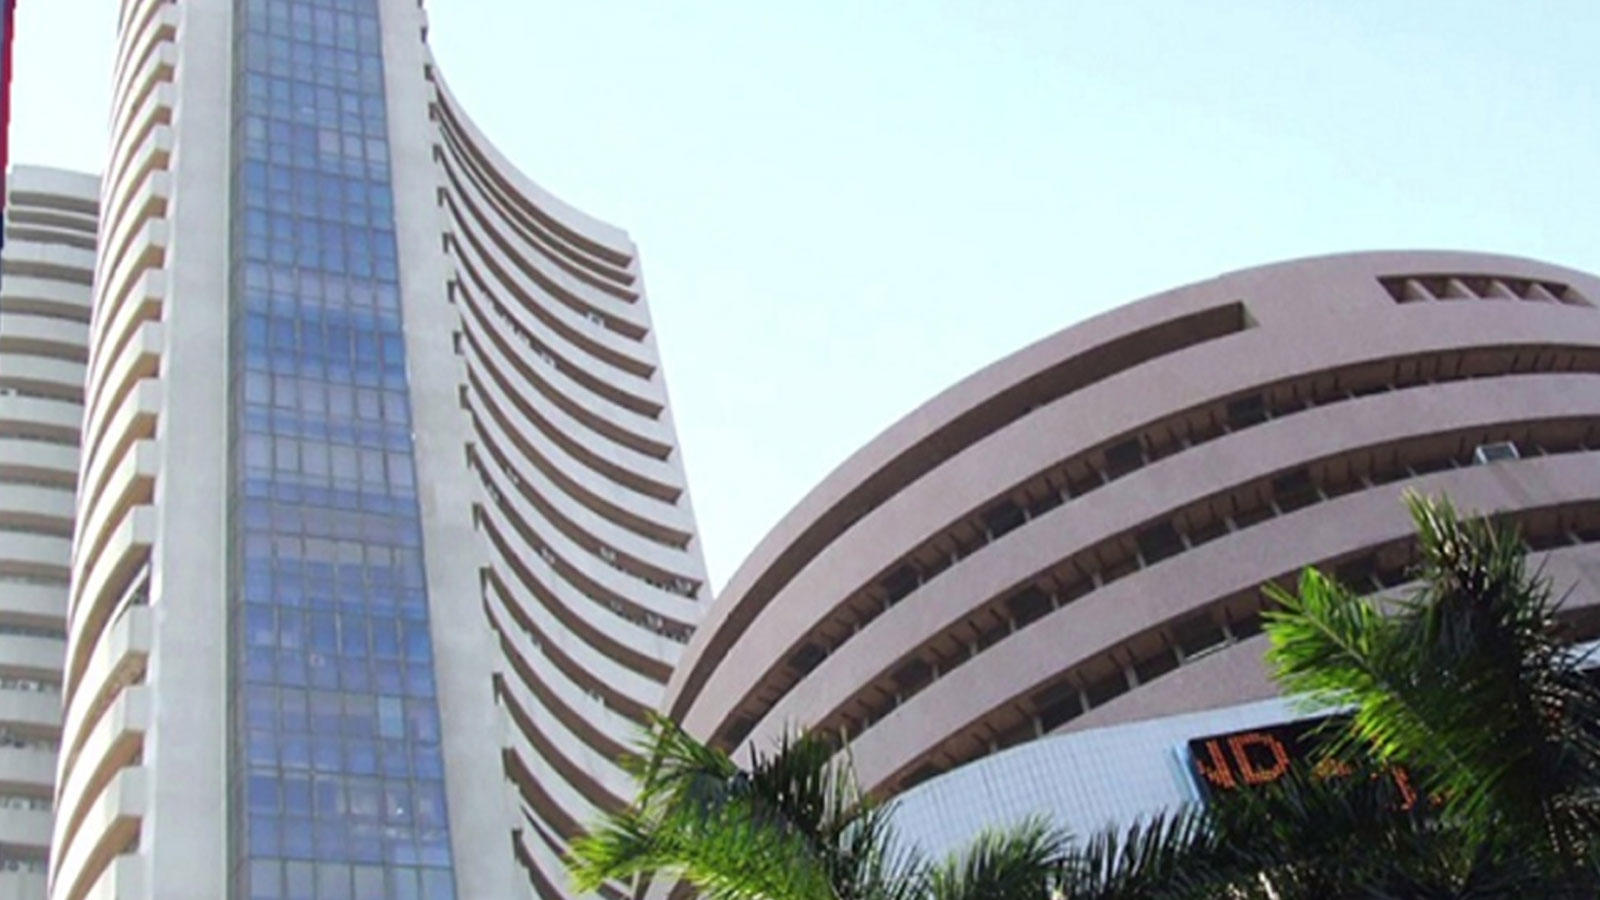 covid-19-sensex-plunges-3935-points-in-biggest-intraday-fall-as-india-goes-into-lockdown